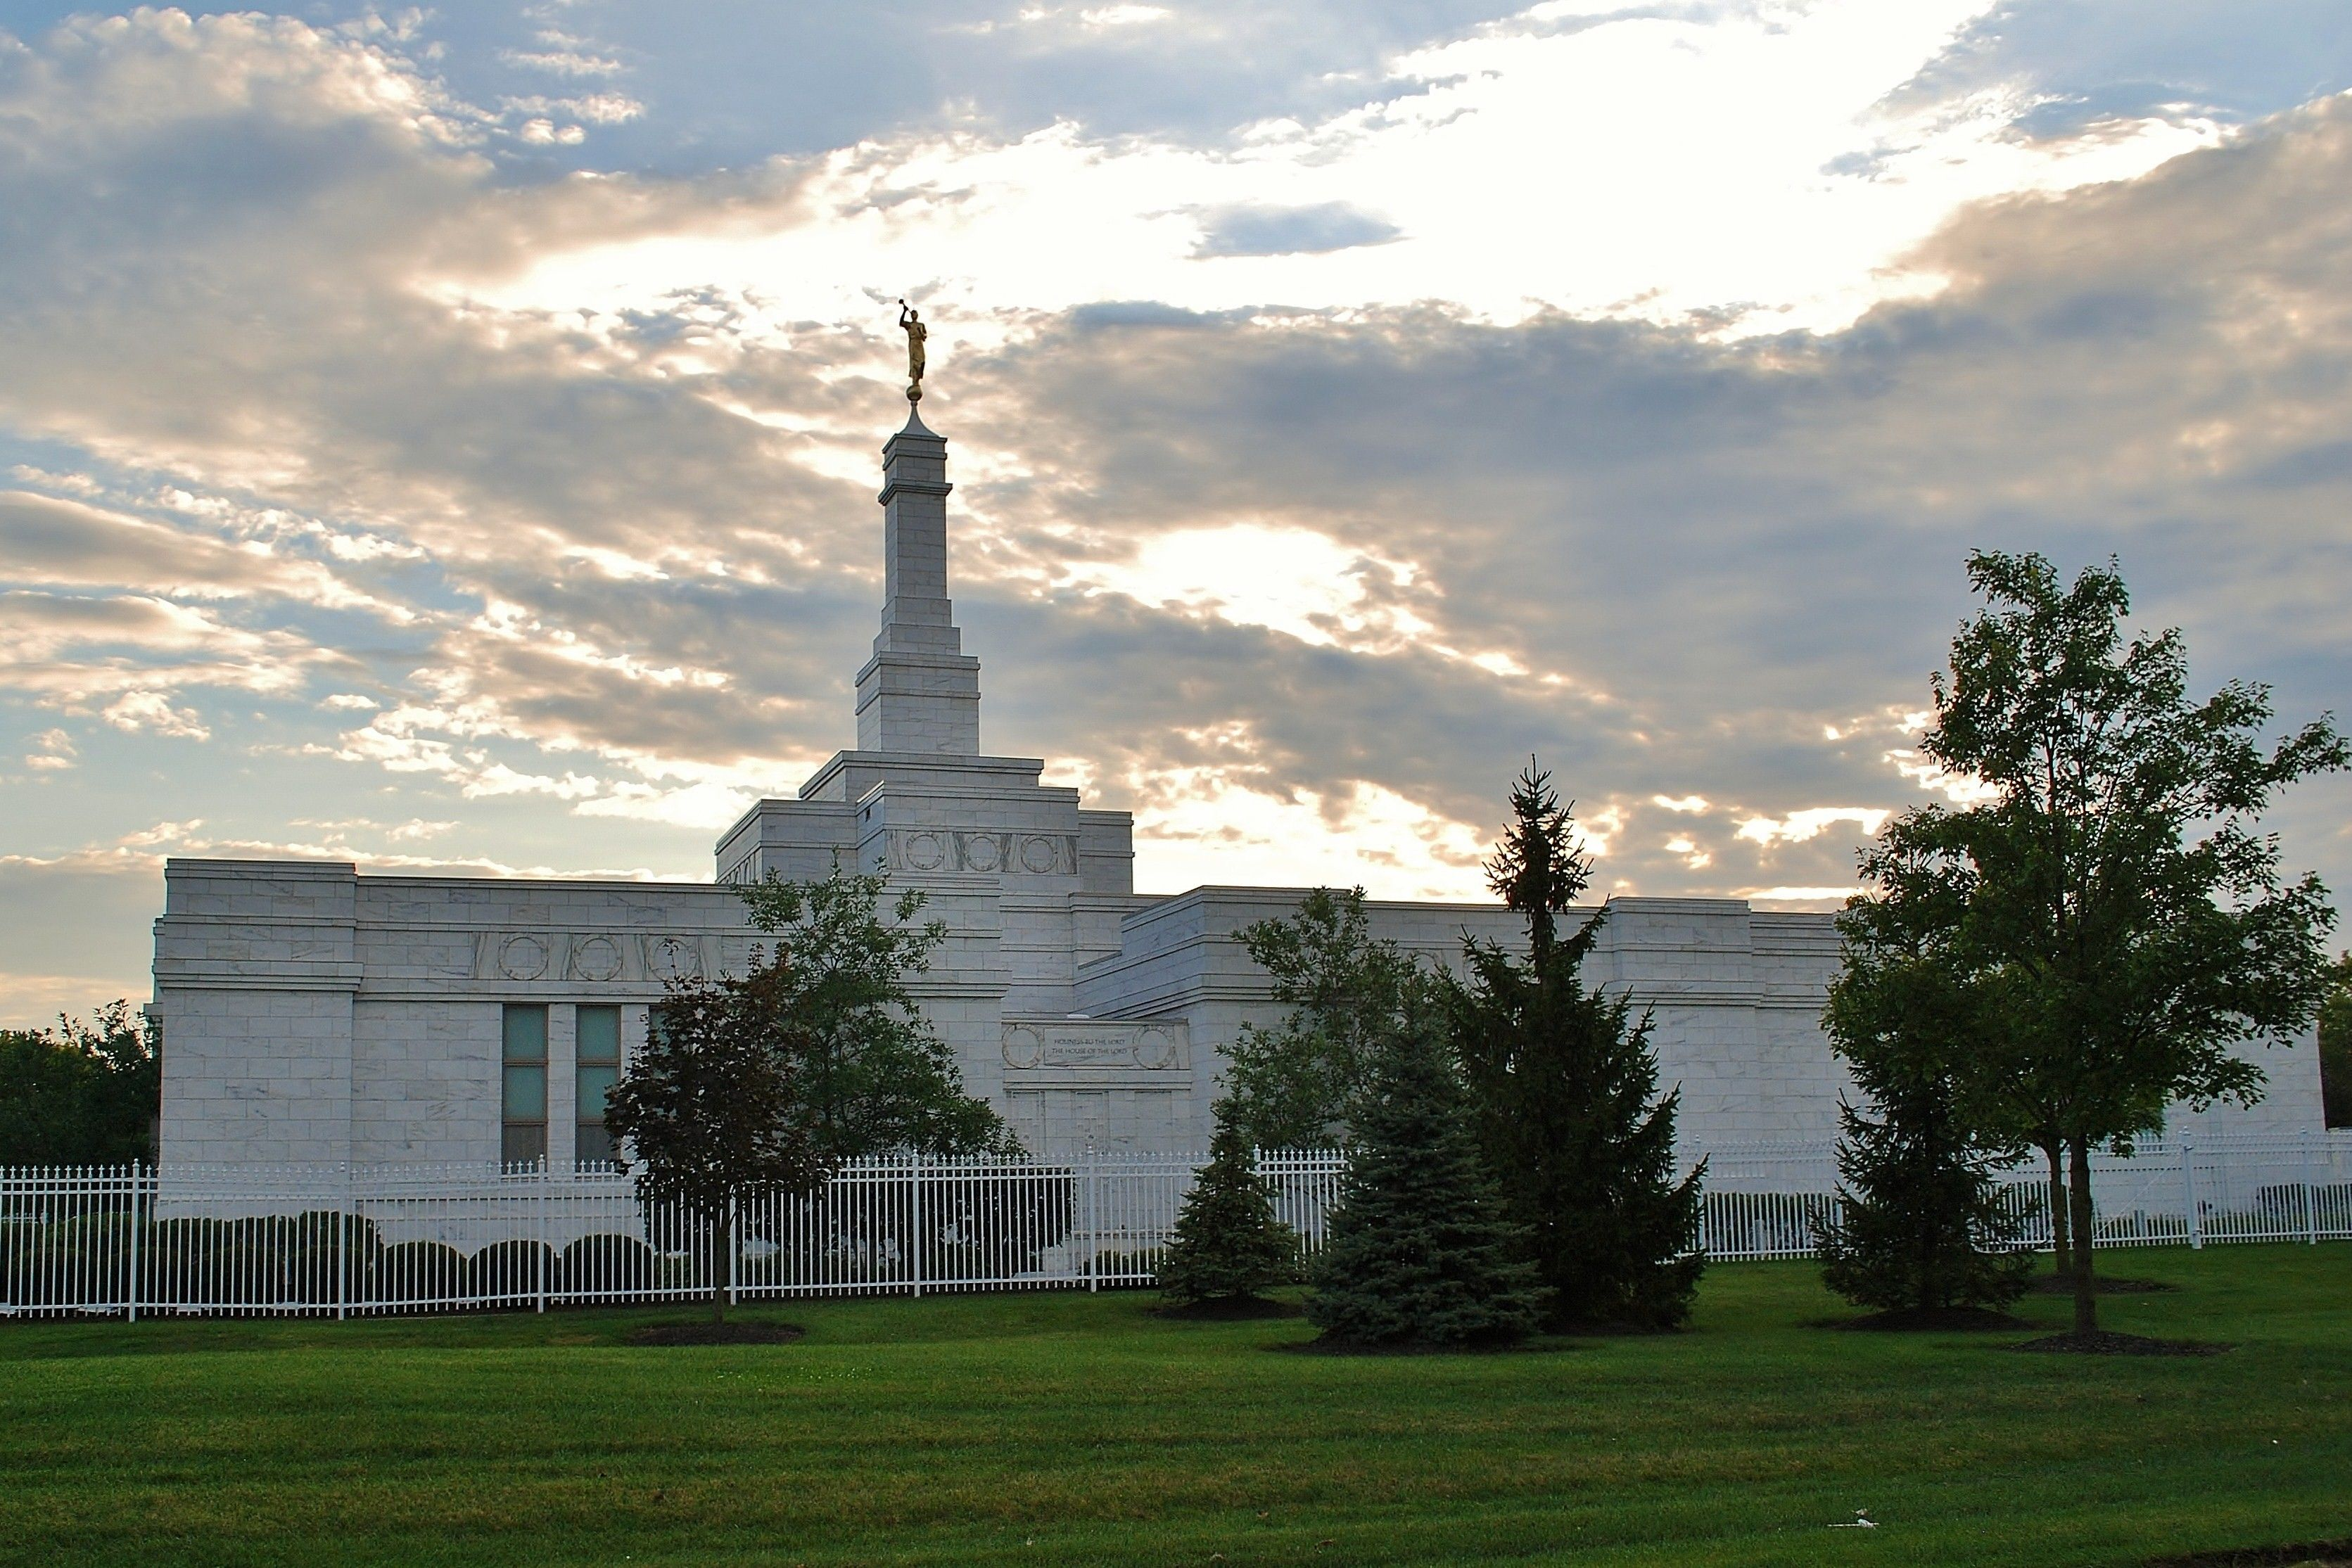 A view of the Columbus Ohio Temple from the grounds in the evening.